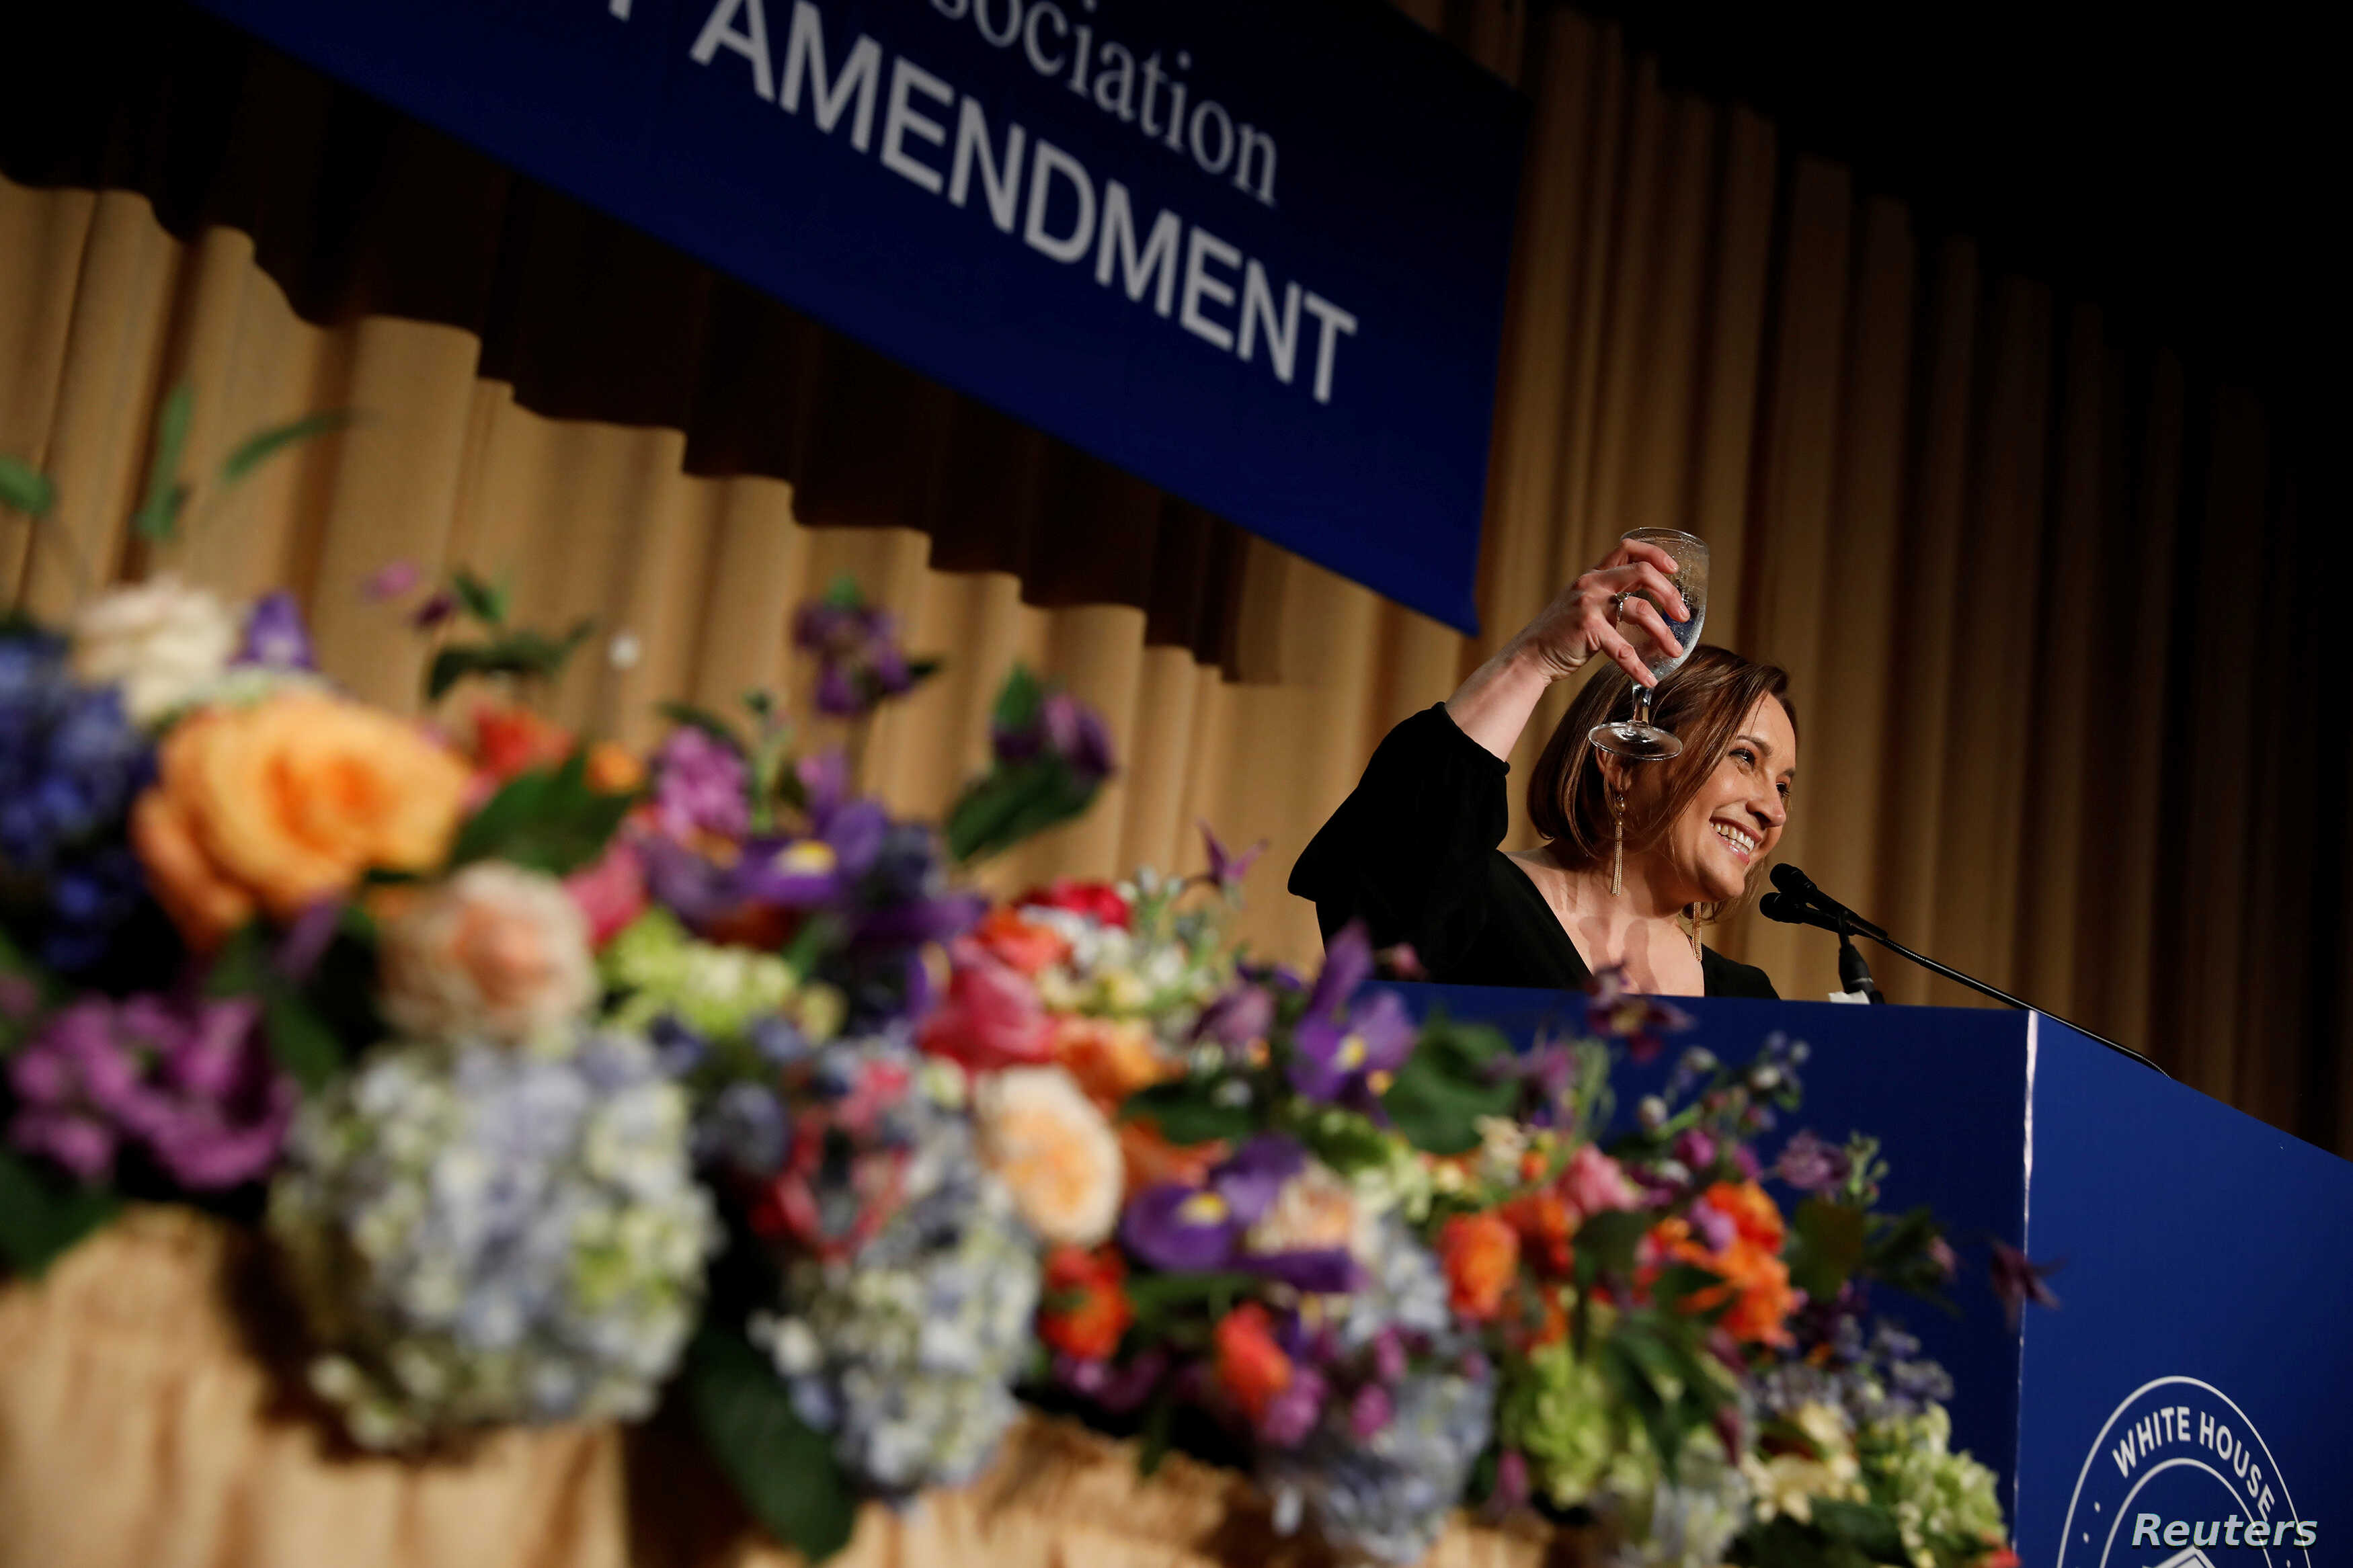 White House Correspondents' Association President Margret Margaret Talev speaks at the White House Correspondents' Association dinner in Washington, U.S., April 28, 2018.